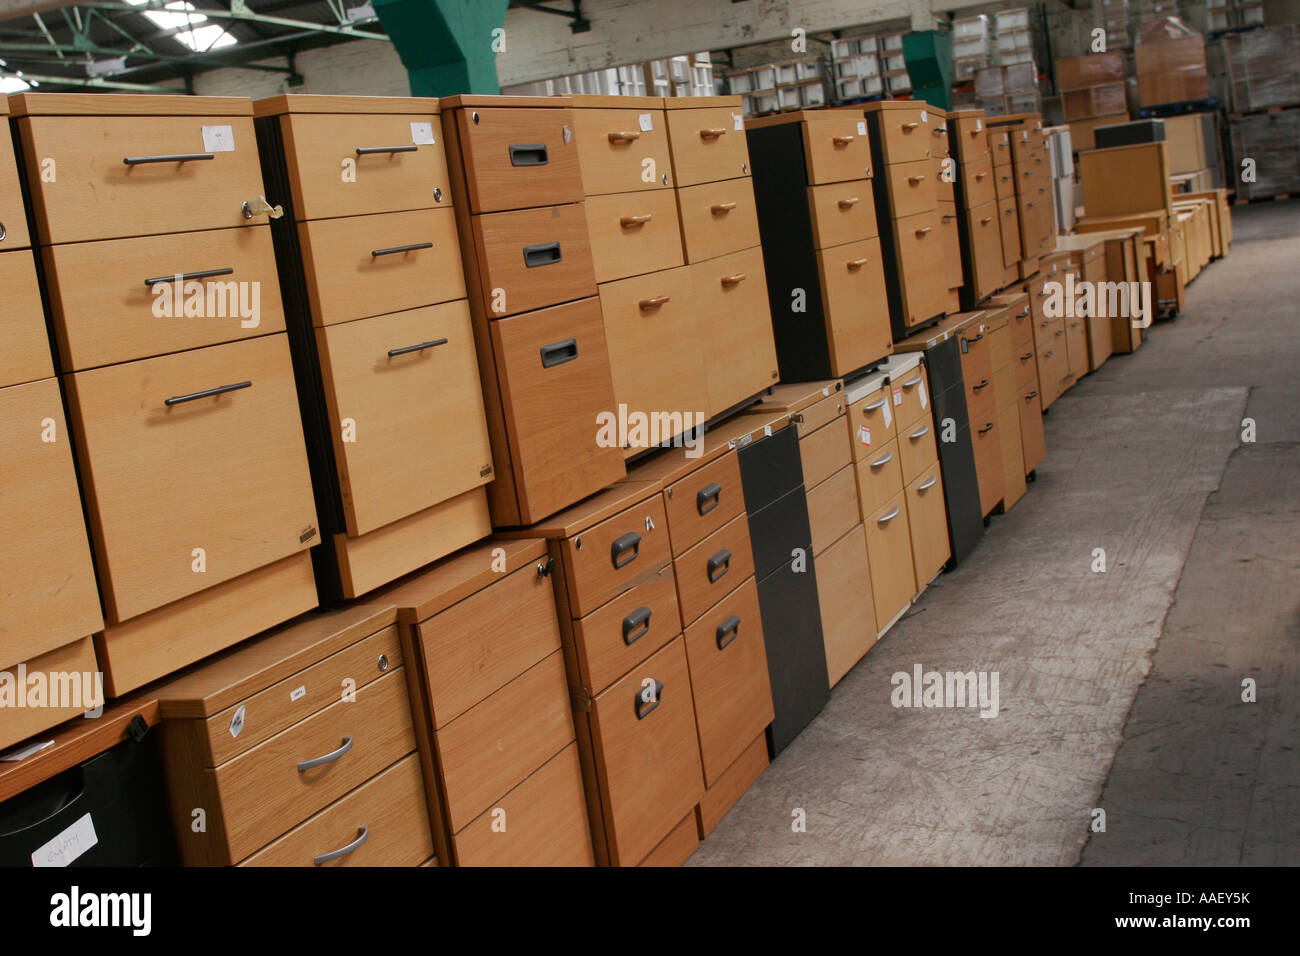 Used Office furniture in warehouse for recycling Stock Photo ...